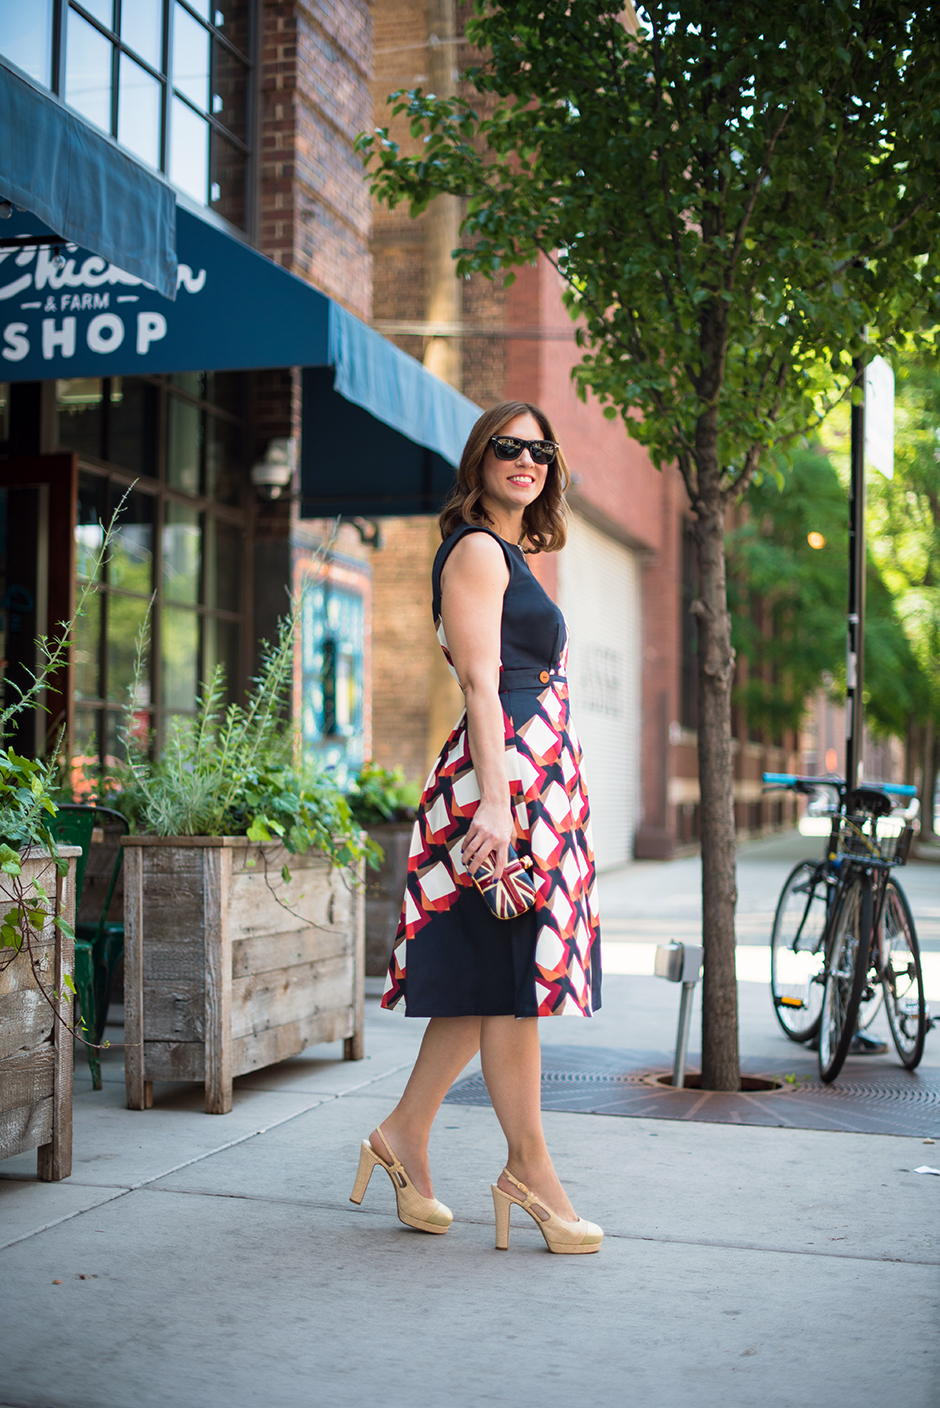 Anna Roufos Sosa of Noir Friday in a printed Suno dress, Alexander McQueen clutch and Chanel pumps.